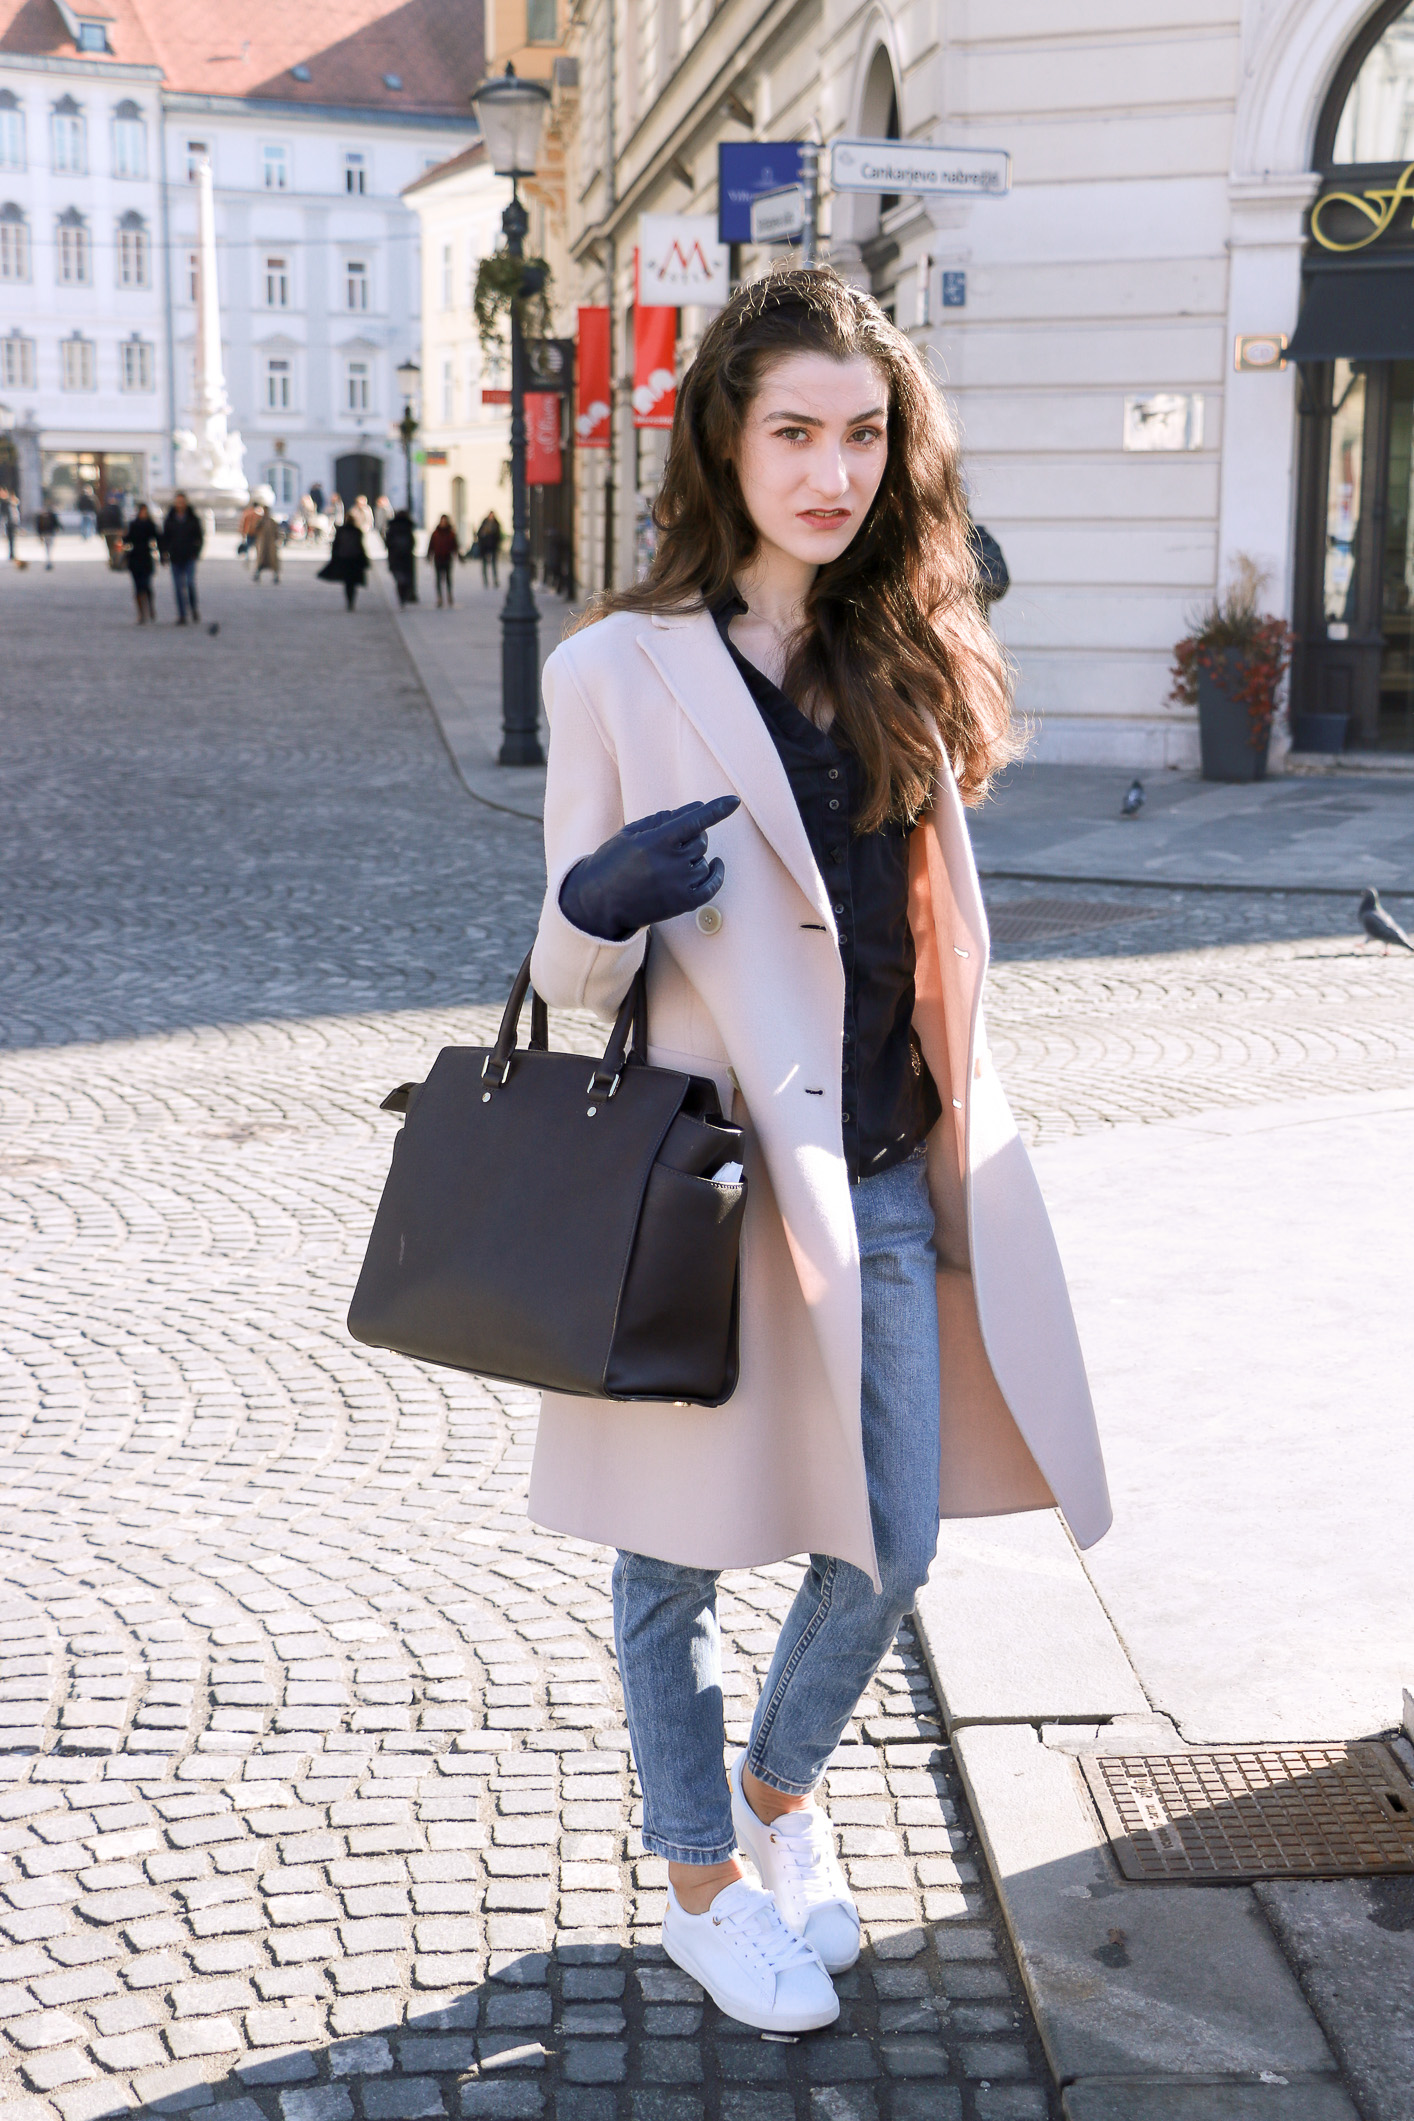 Fashion blogger Veronika Lipar of Brunette From Wall Street sharing what to wear this weekend in the city